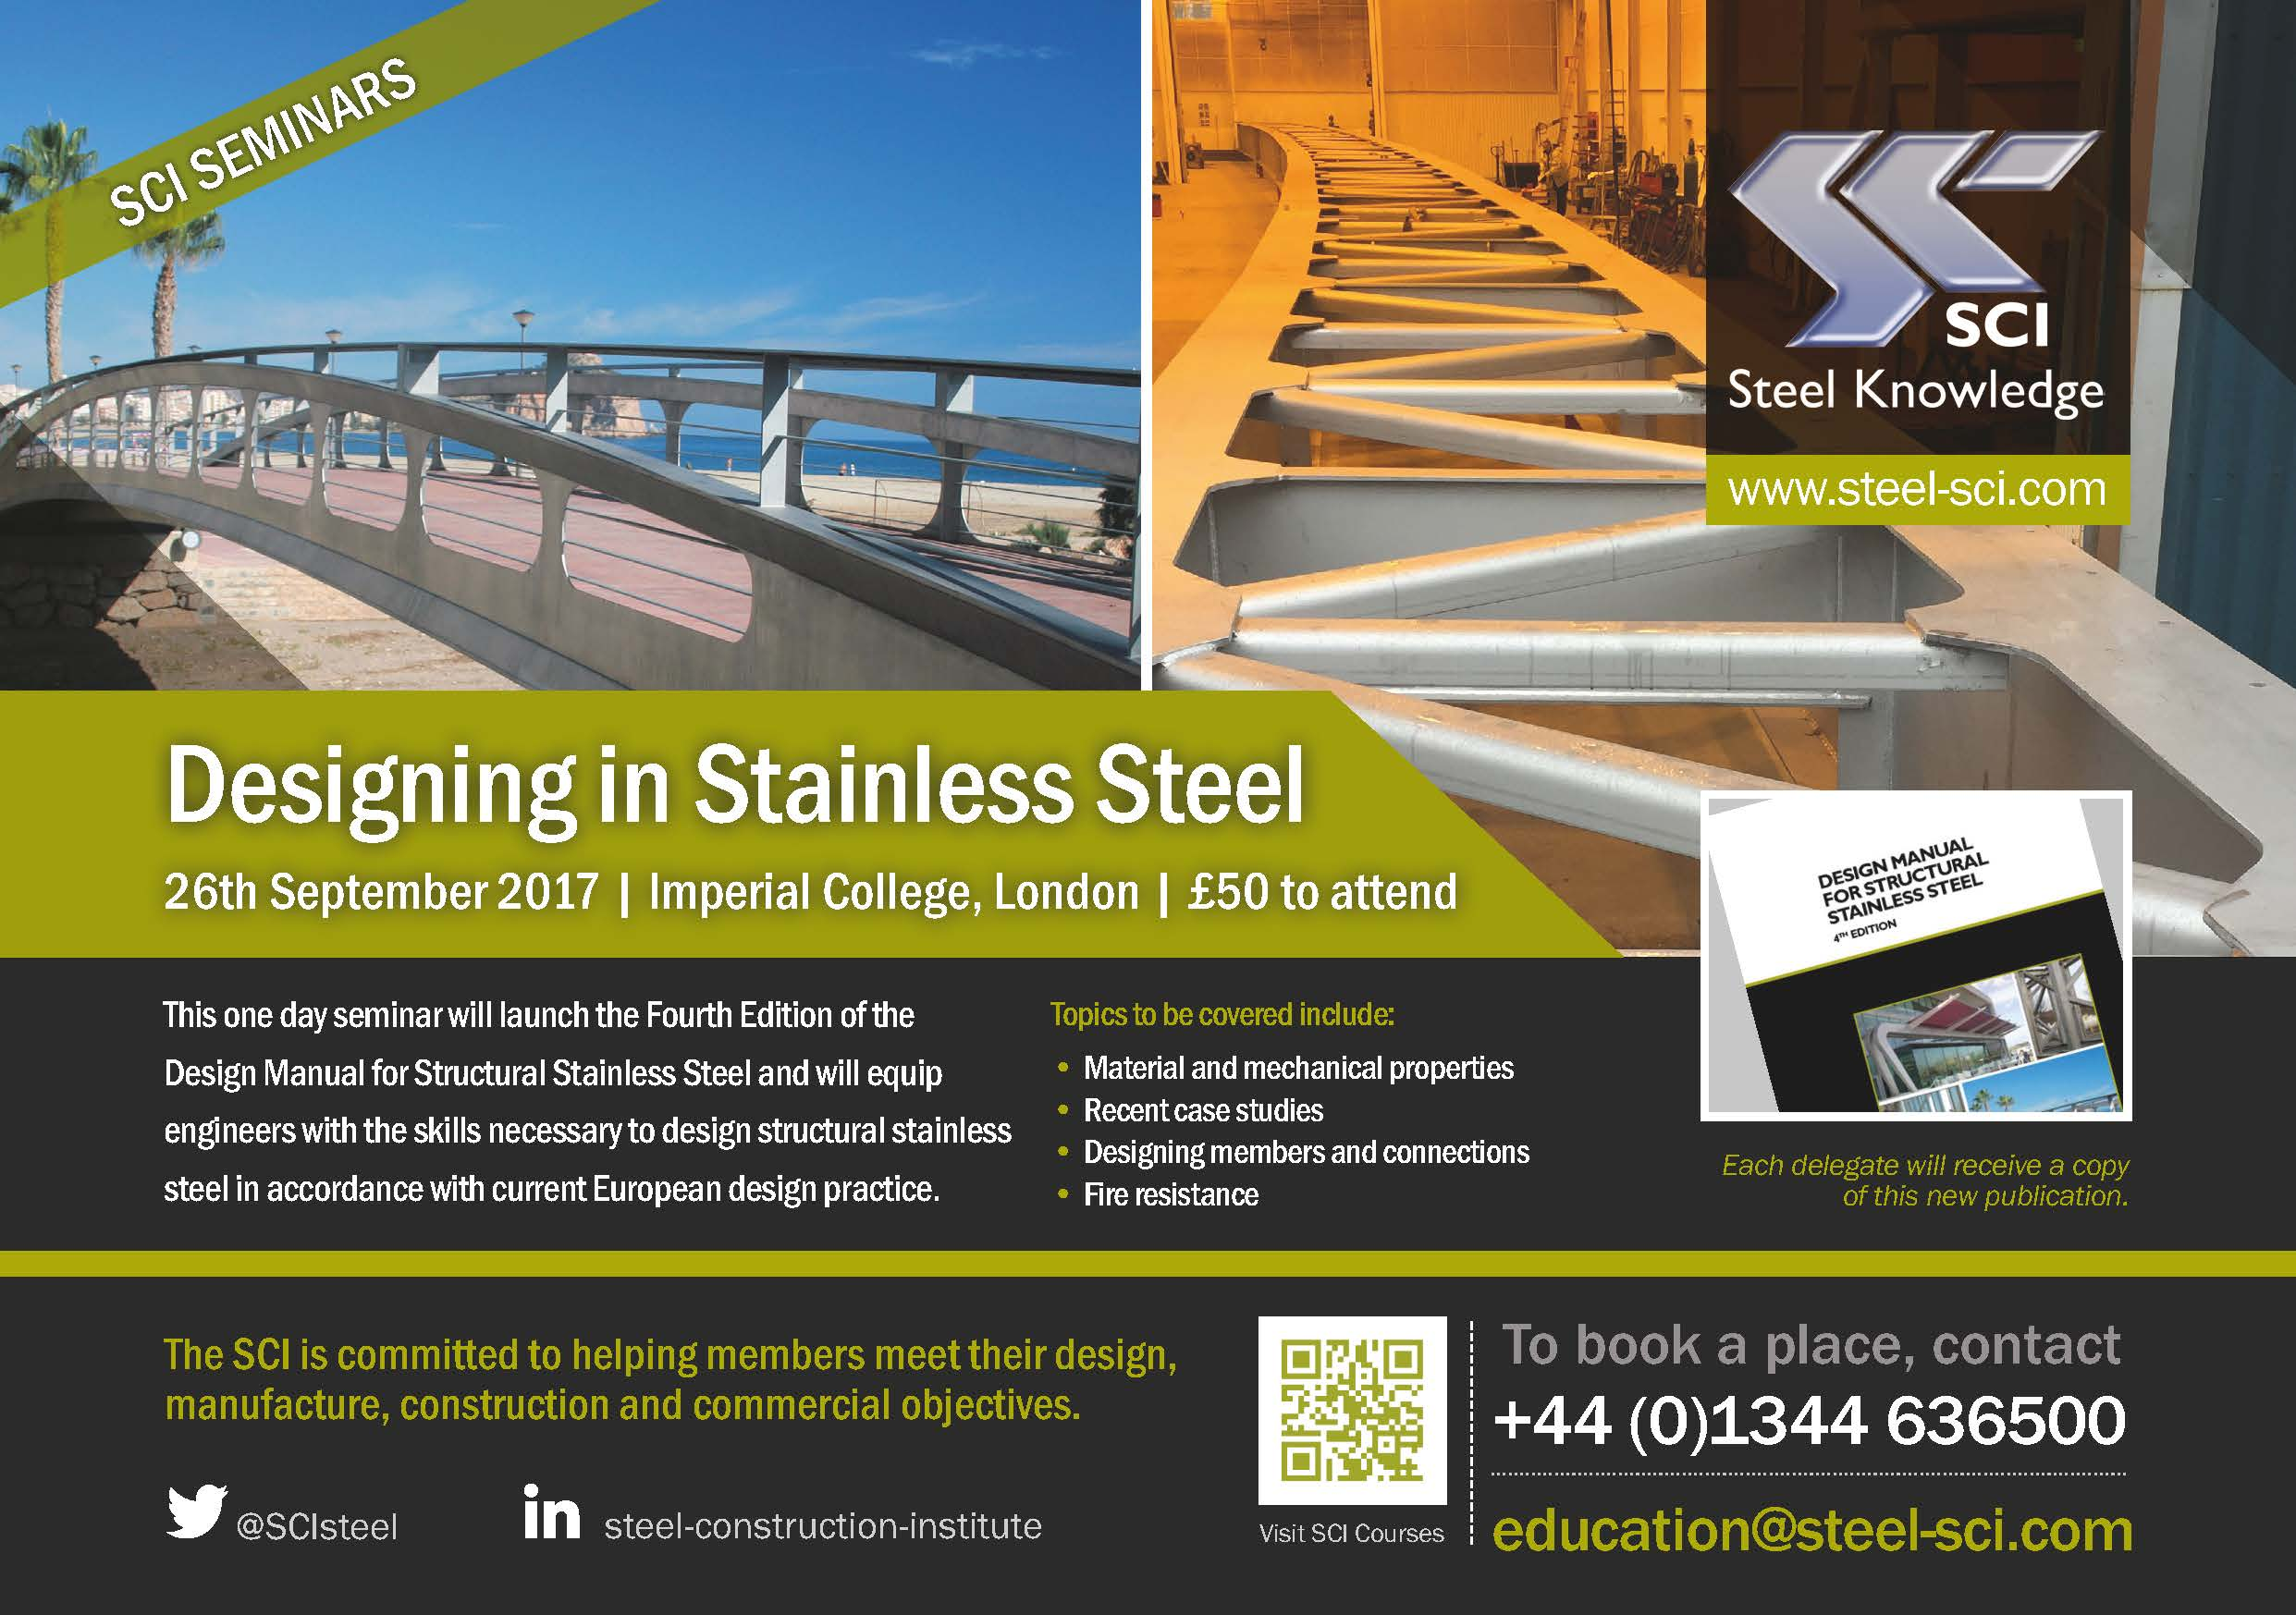 FW787 Half Page Advert Designing in Stainless Steel (003)nocrop